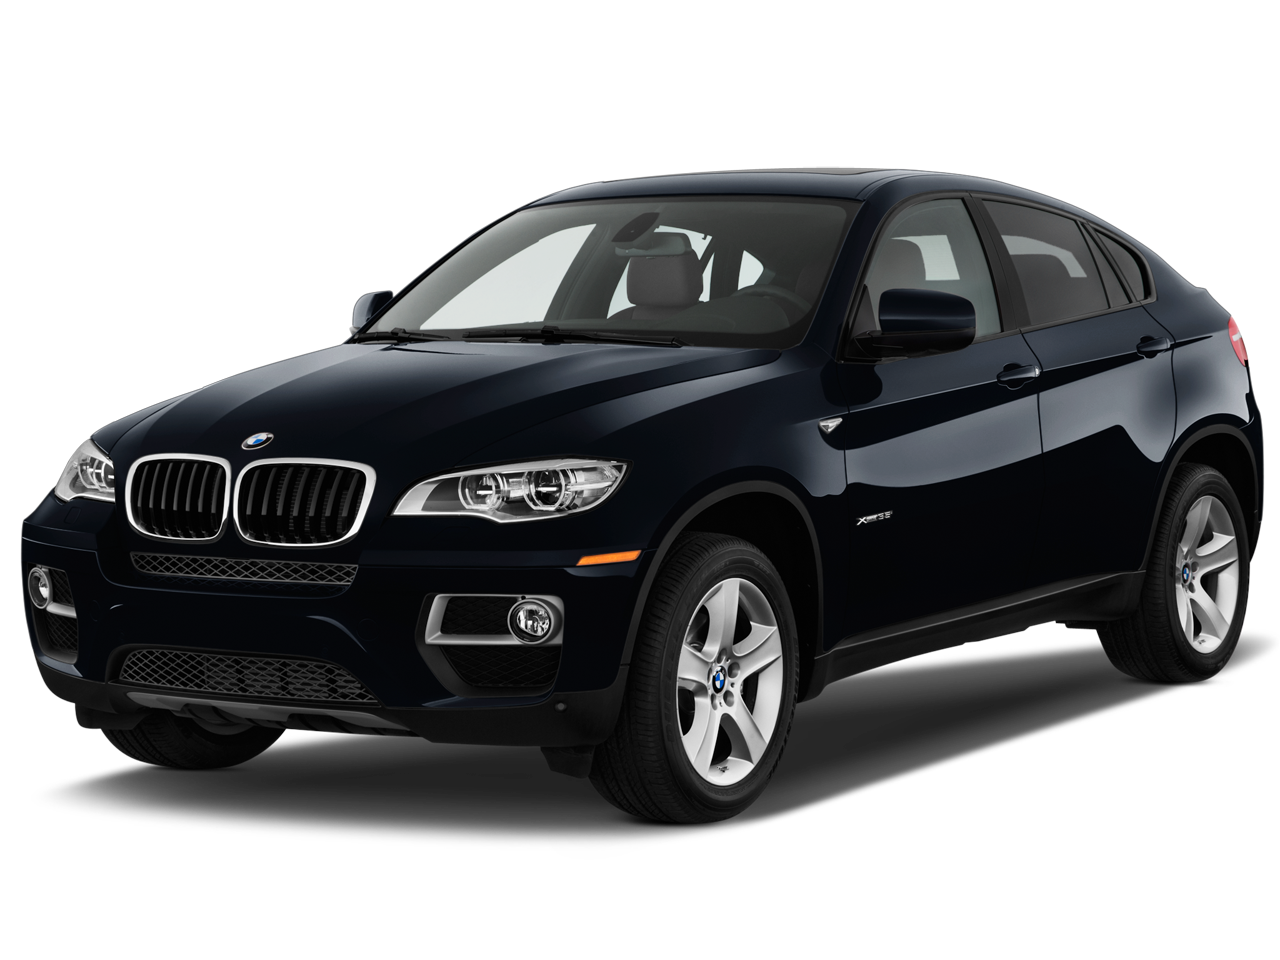 bmw png images are download crazypngm #22455